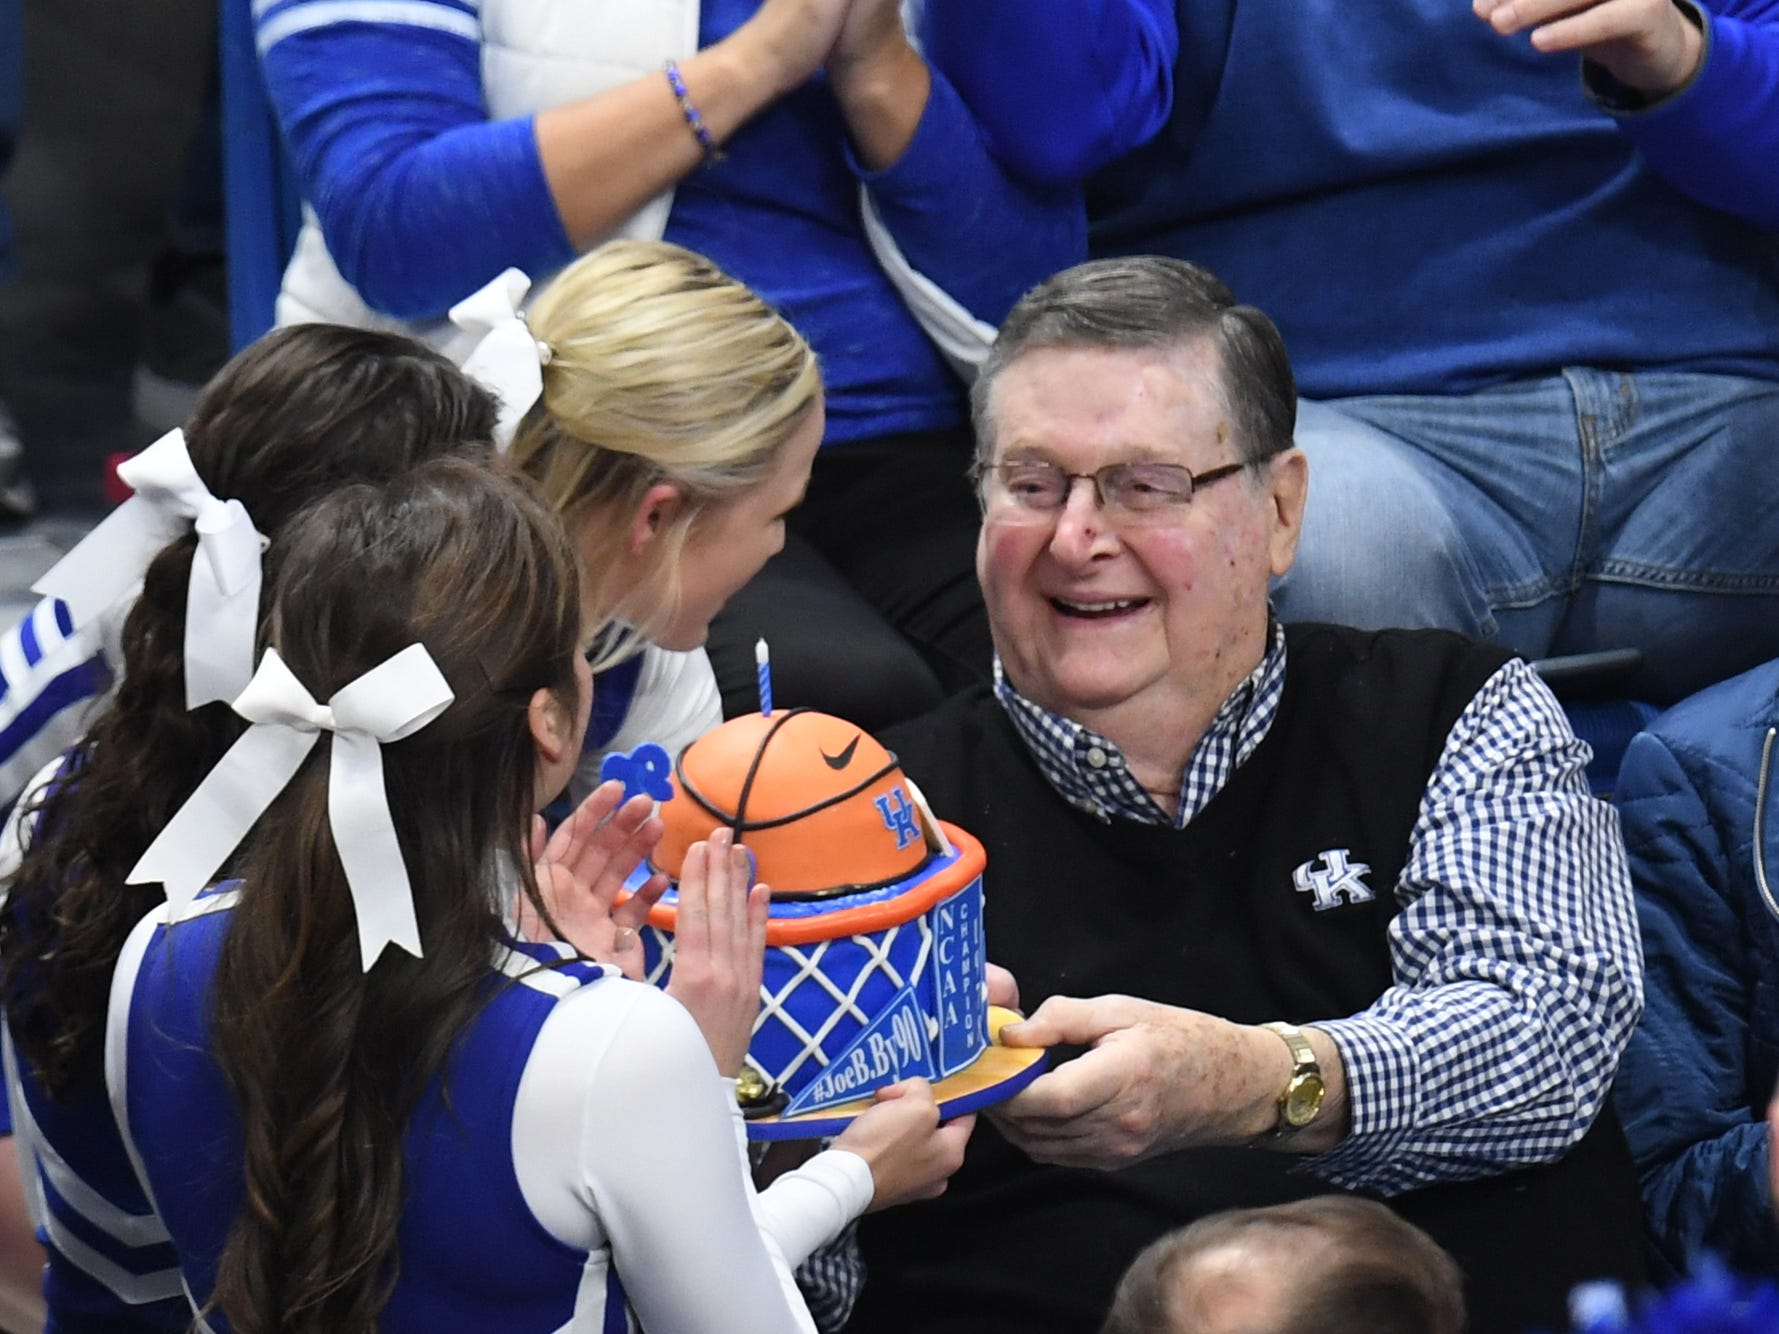 Former UK head coach Joe B. Hall celebrates his 90th birthday and is presented a cake by UK cheerleaders during the University of Kentucky men's basketball game against UNC Greensboro at Rupp Arena in Lexington, Kentucky on Saturday, December 1, 2018.